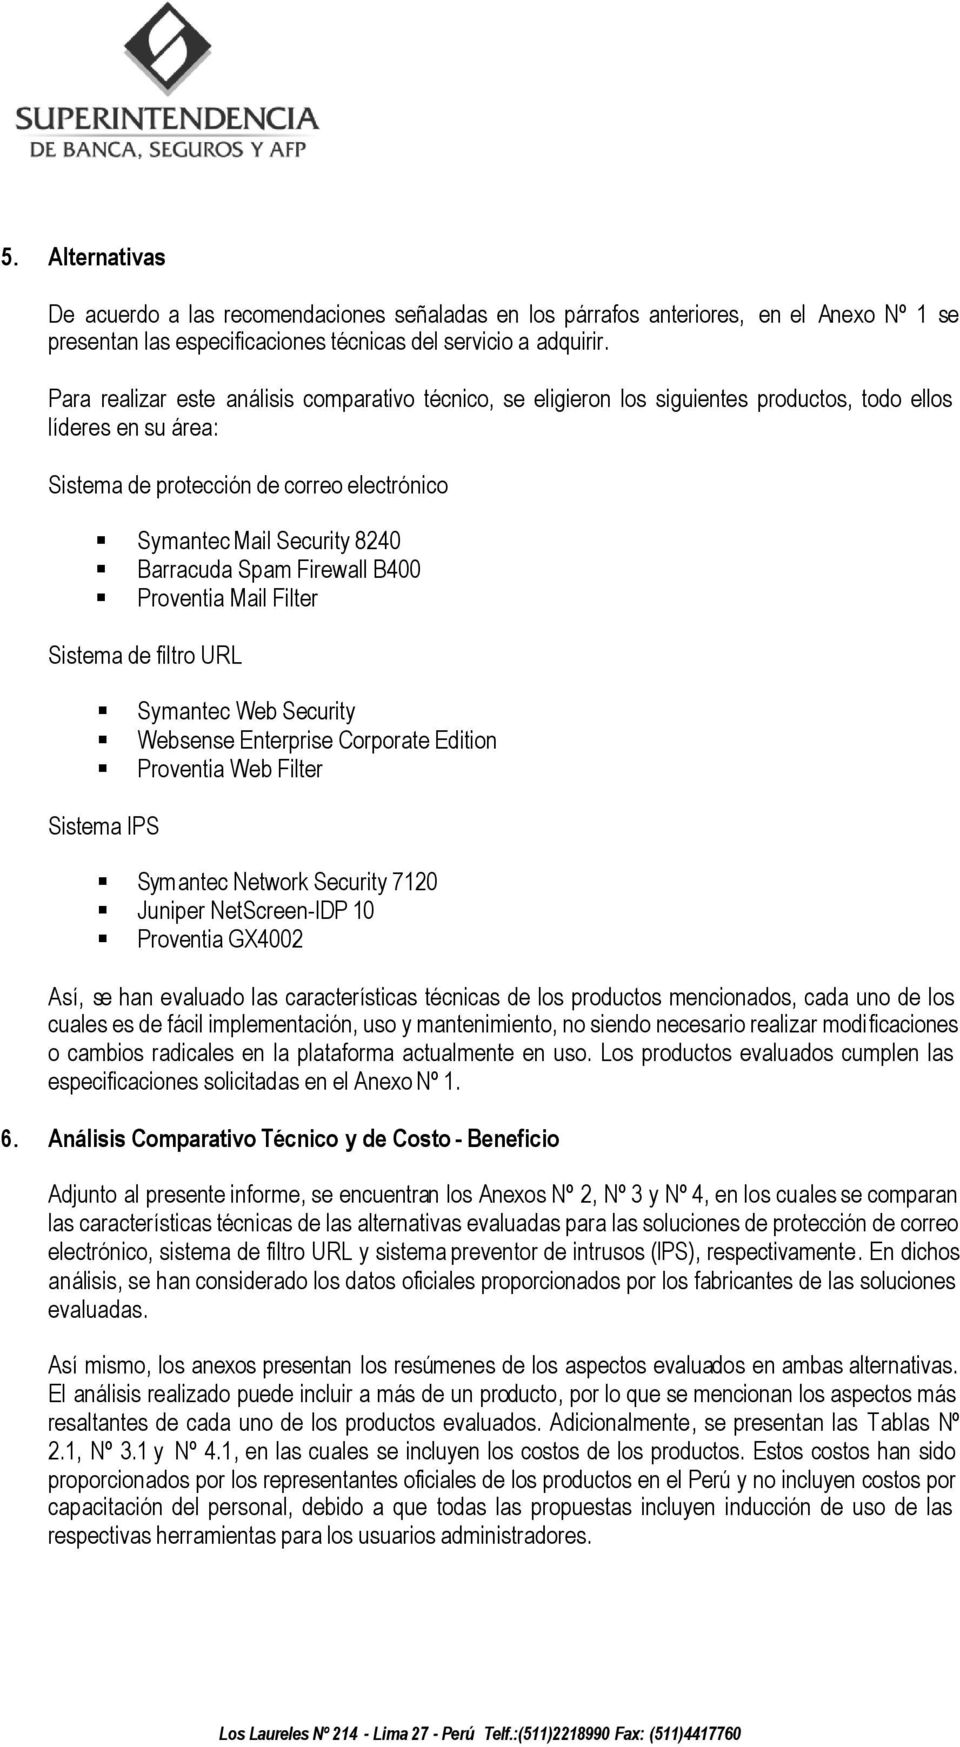 Barracuda Spam Firewall B400 Proventia Mail Filter Sistema de filtro URL Symantec Web Security Websense Enterprise Corporate Edition Proventia Web Filter Sistema IPS Symantec Network Security 7120